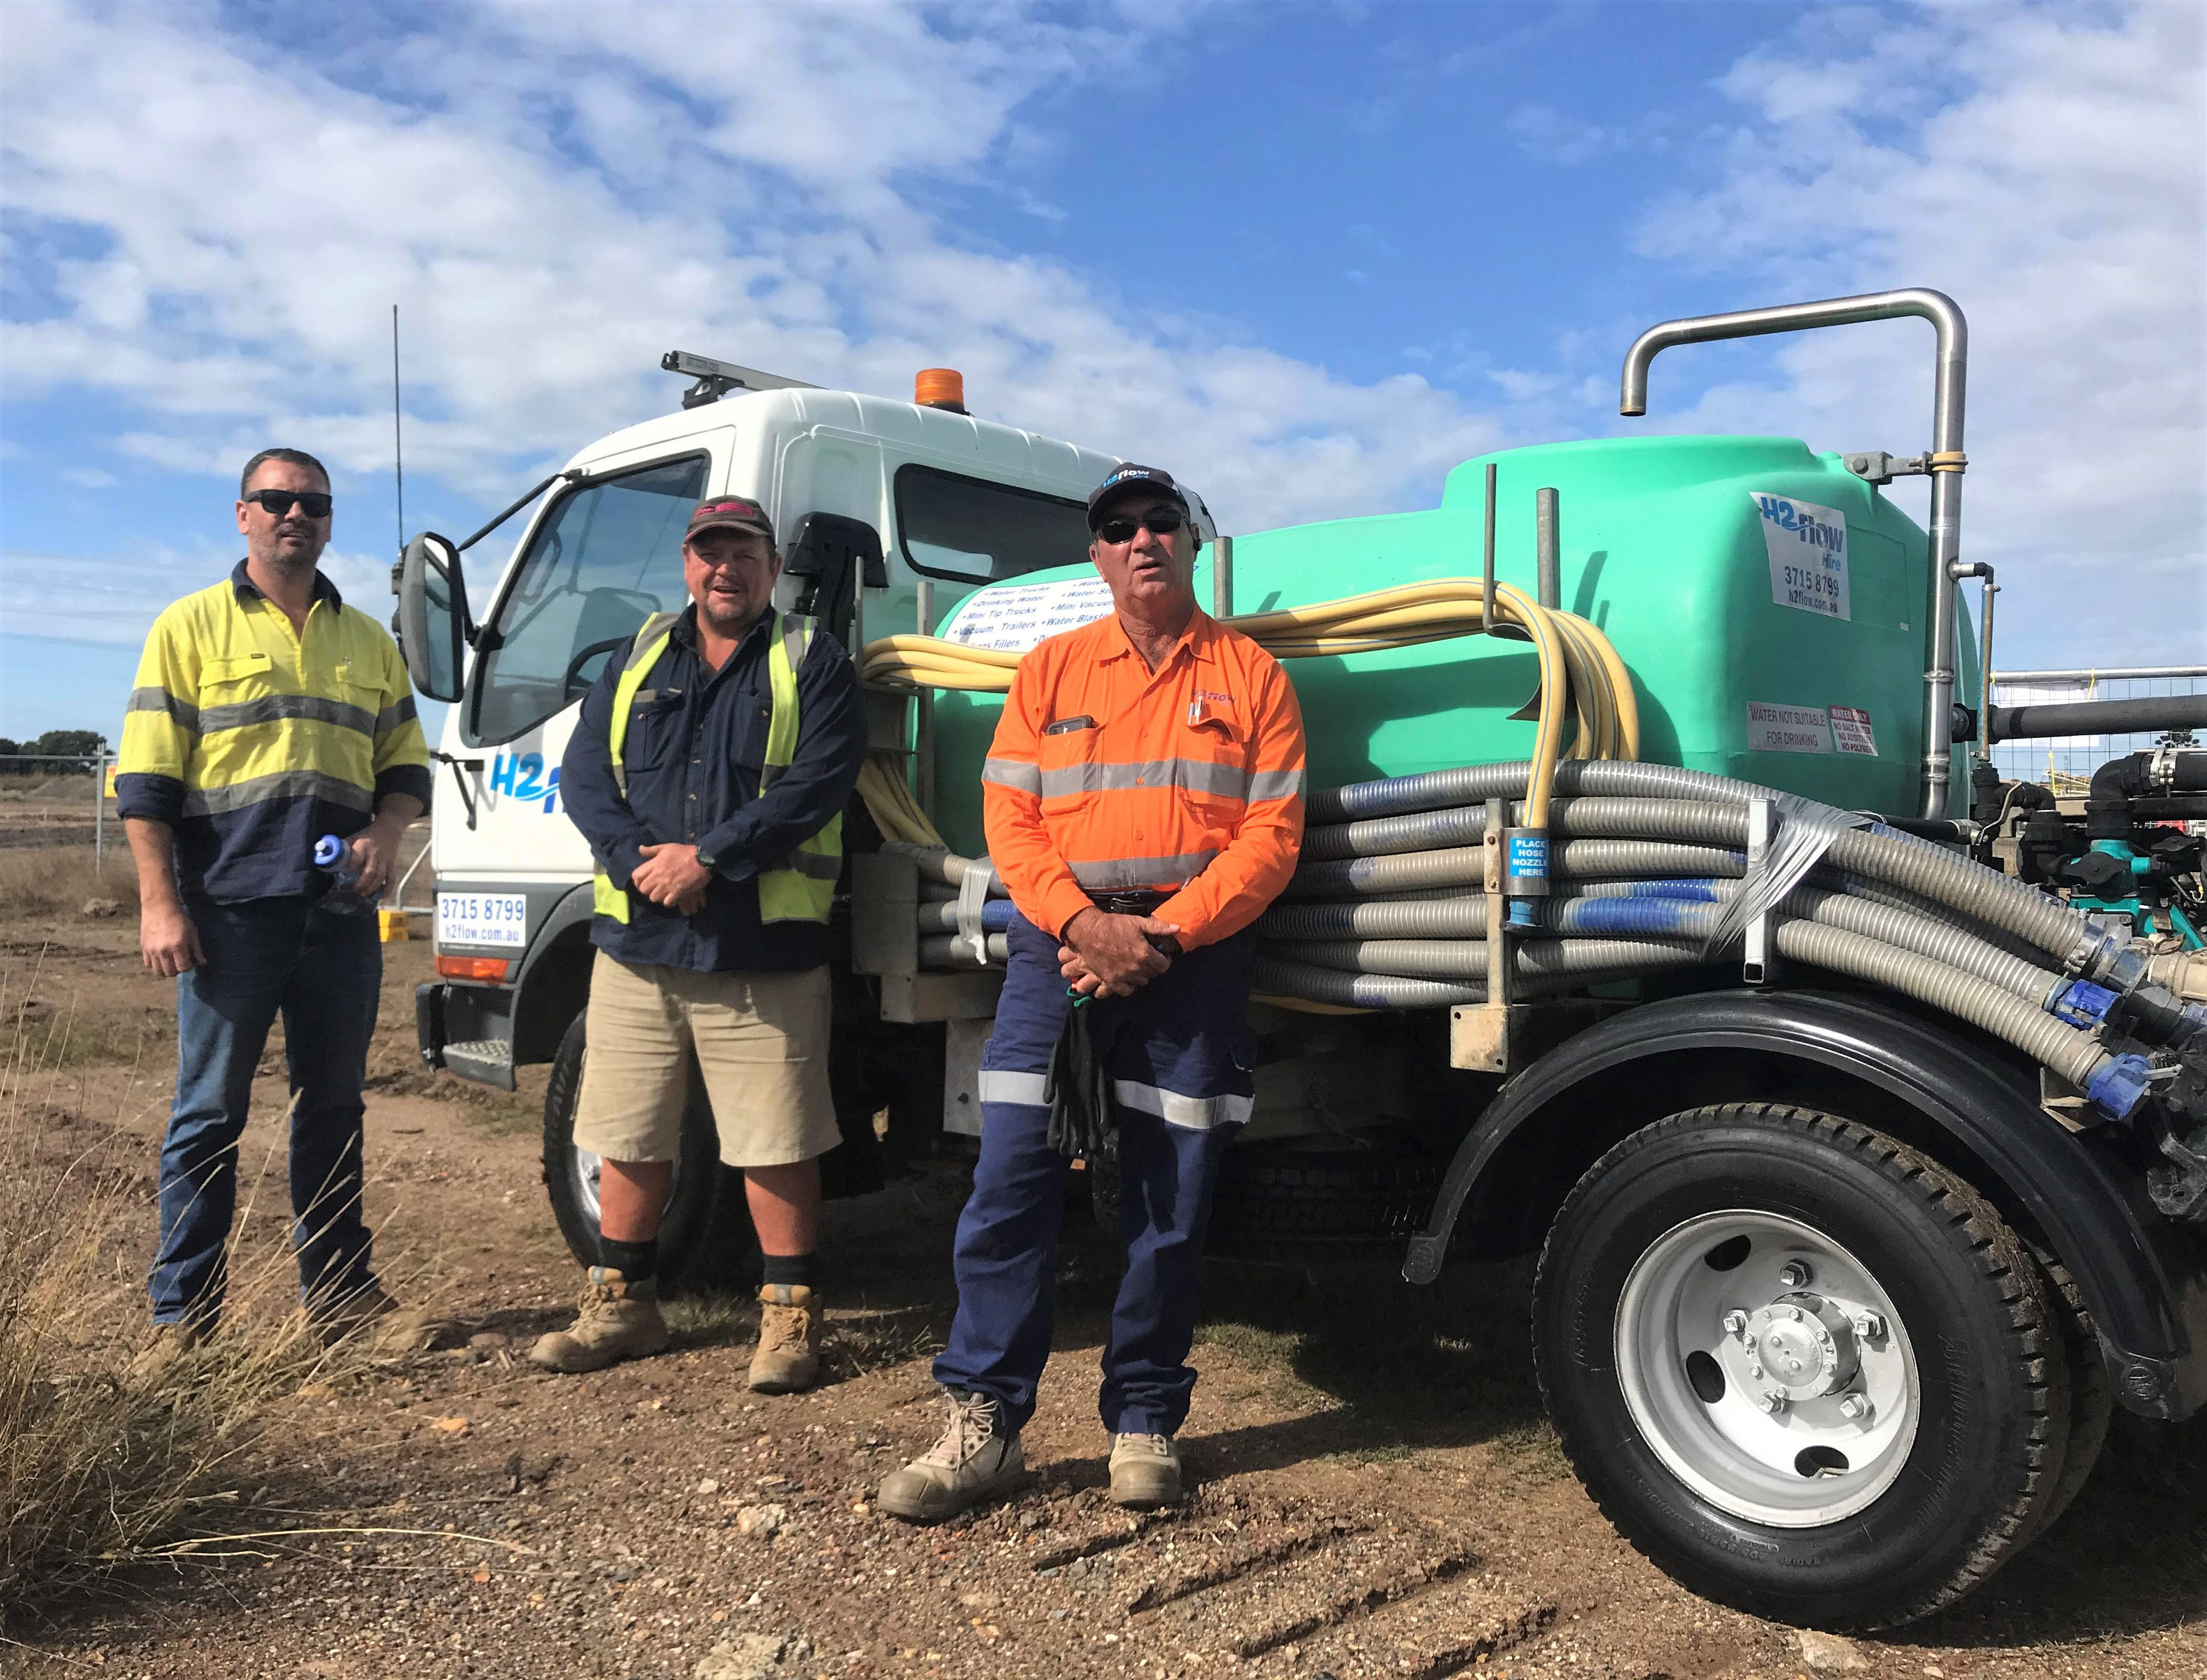 General Manger Anthony Betts and the team from Skerman Civil with a H2fiow Hire water truck.